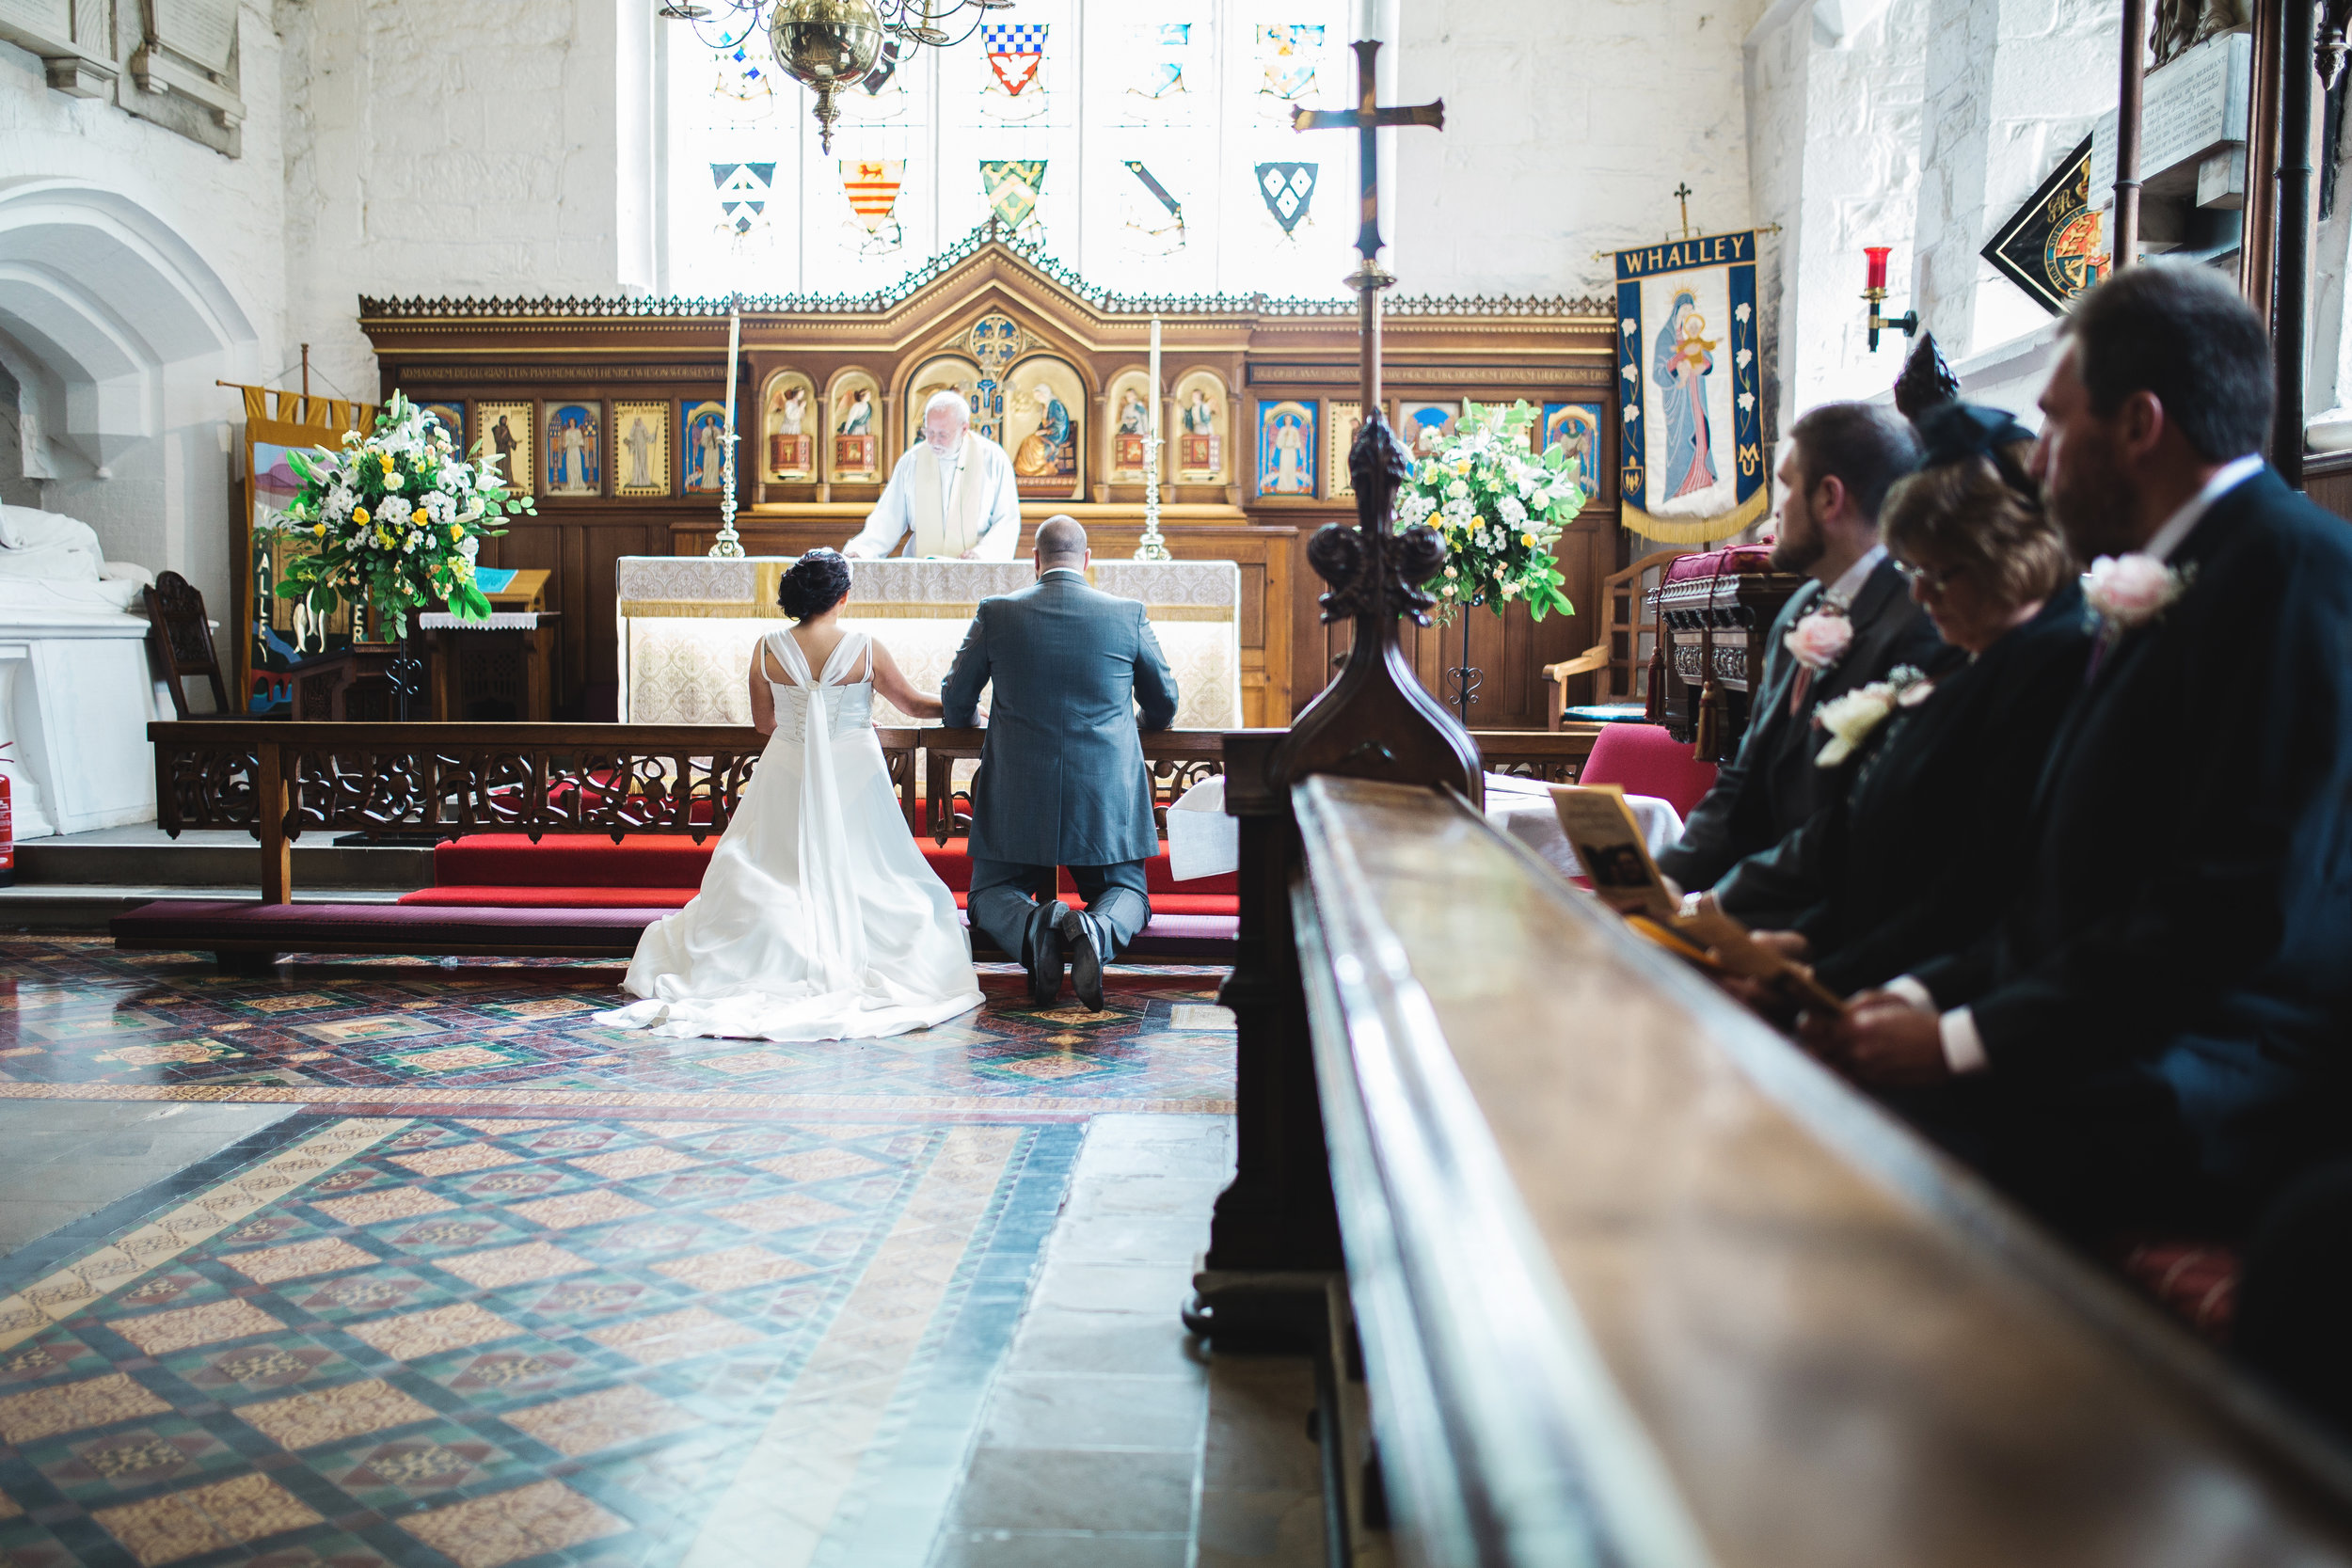 getting blessed - church ceremony Lancashire